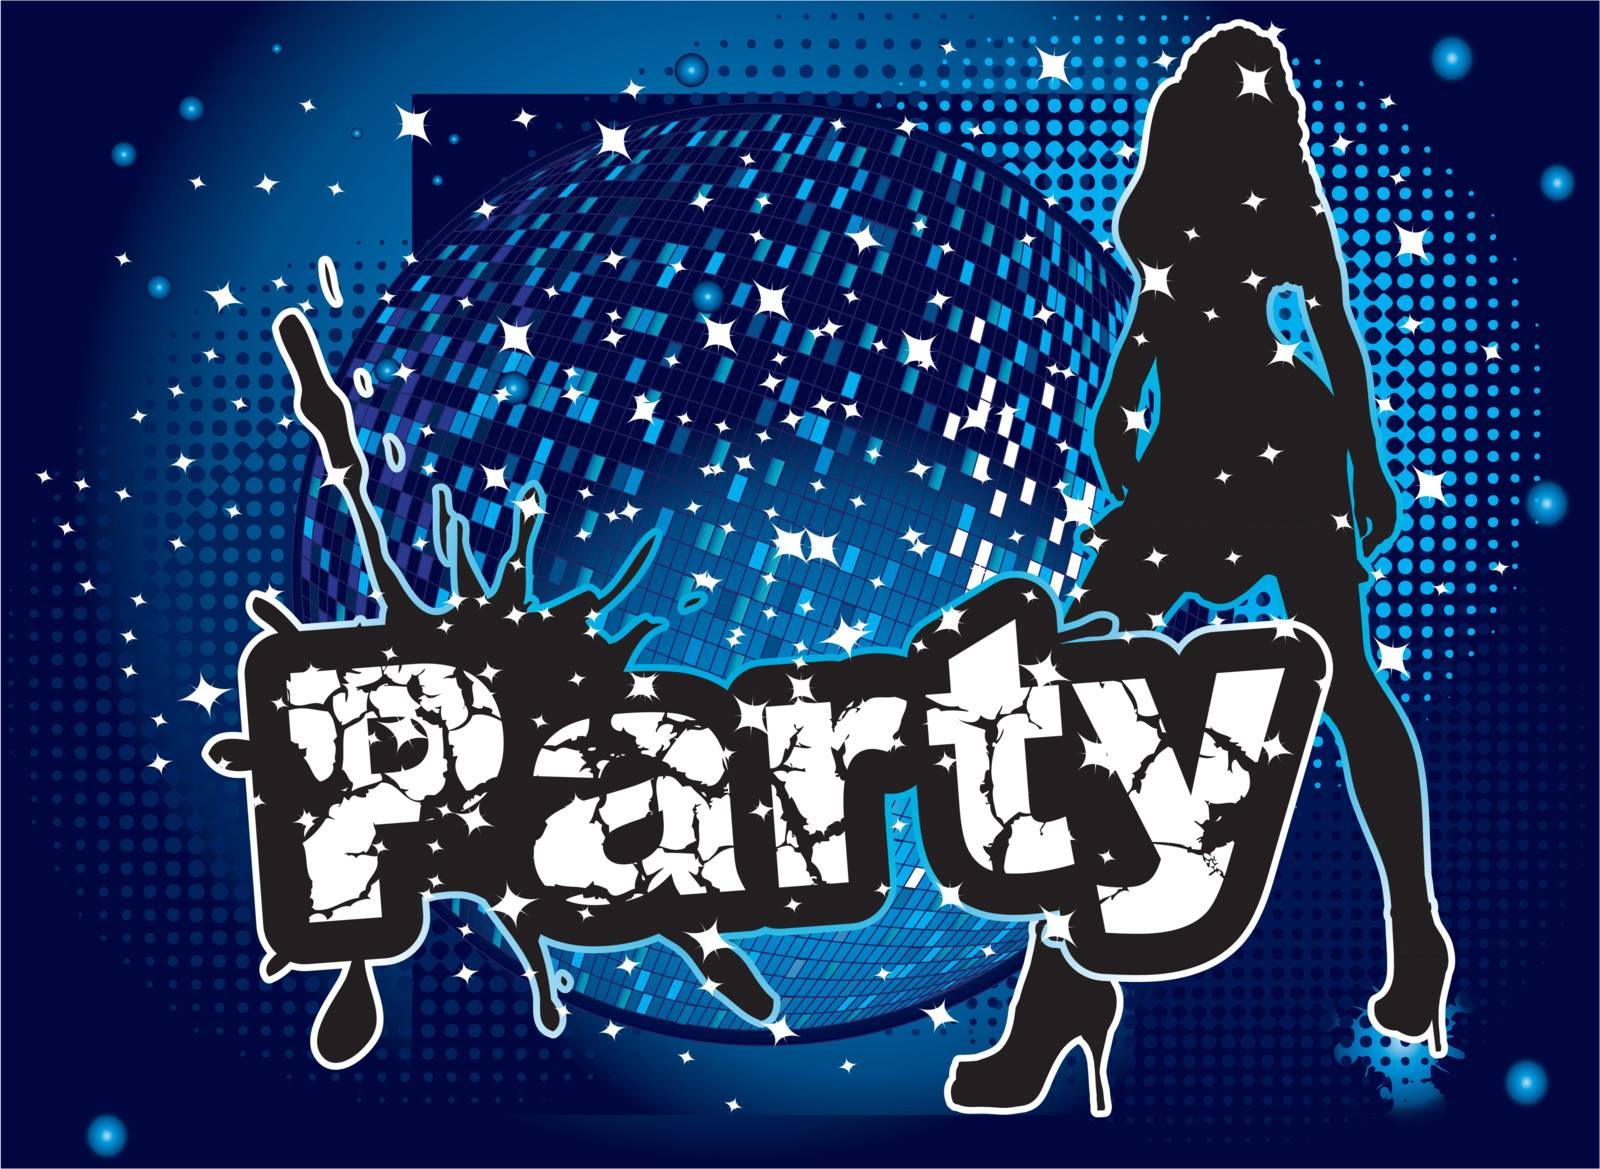 party background with big disco ball and woman sillhouette dancing - original hand drawn vector illustration